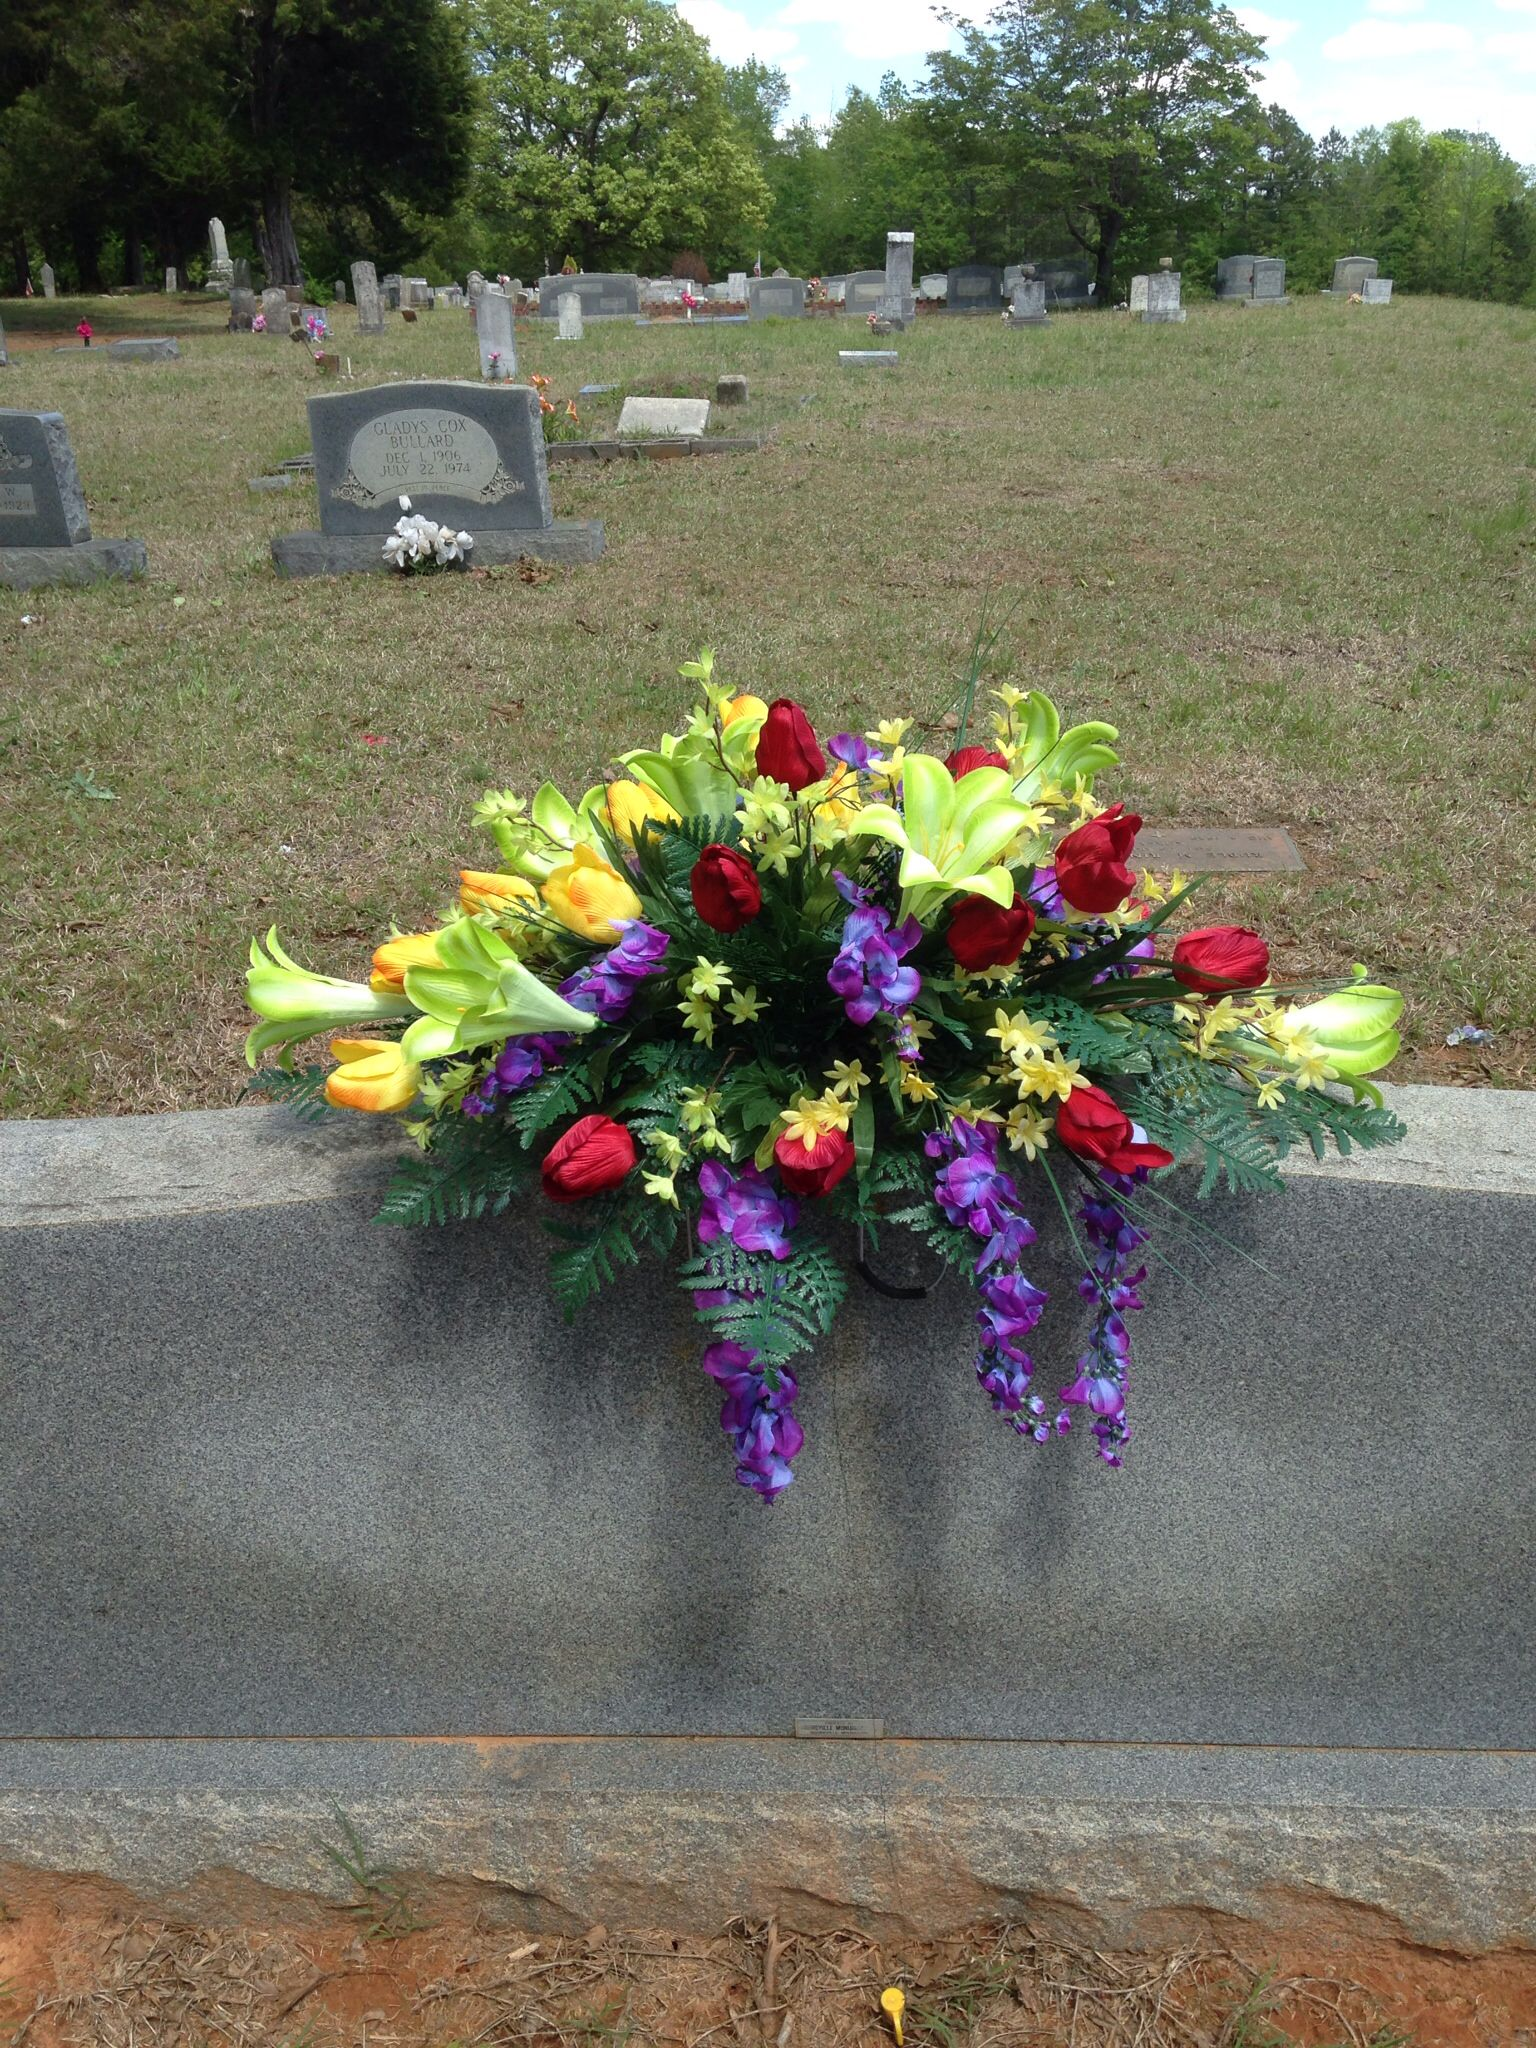 Fibre optic christmas flowers and xmas flowers - Mixed Spring Summer Tomb Topper Using Color Blocking Style Cemetery Flowersmemorial